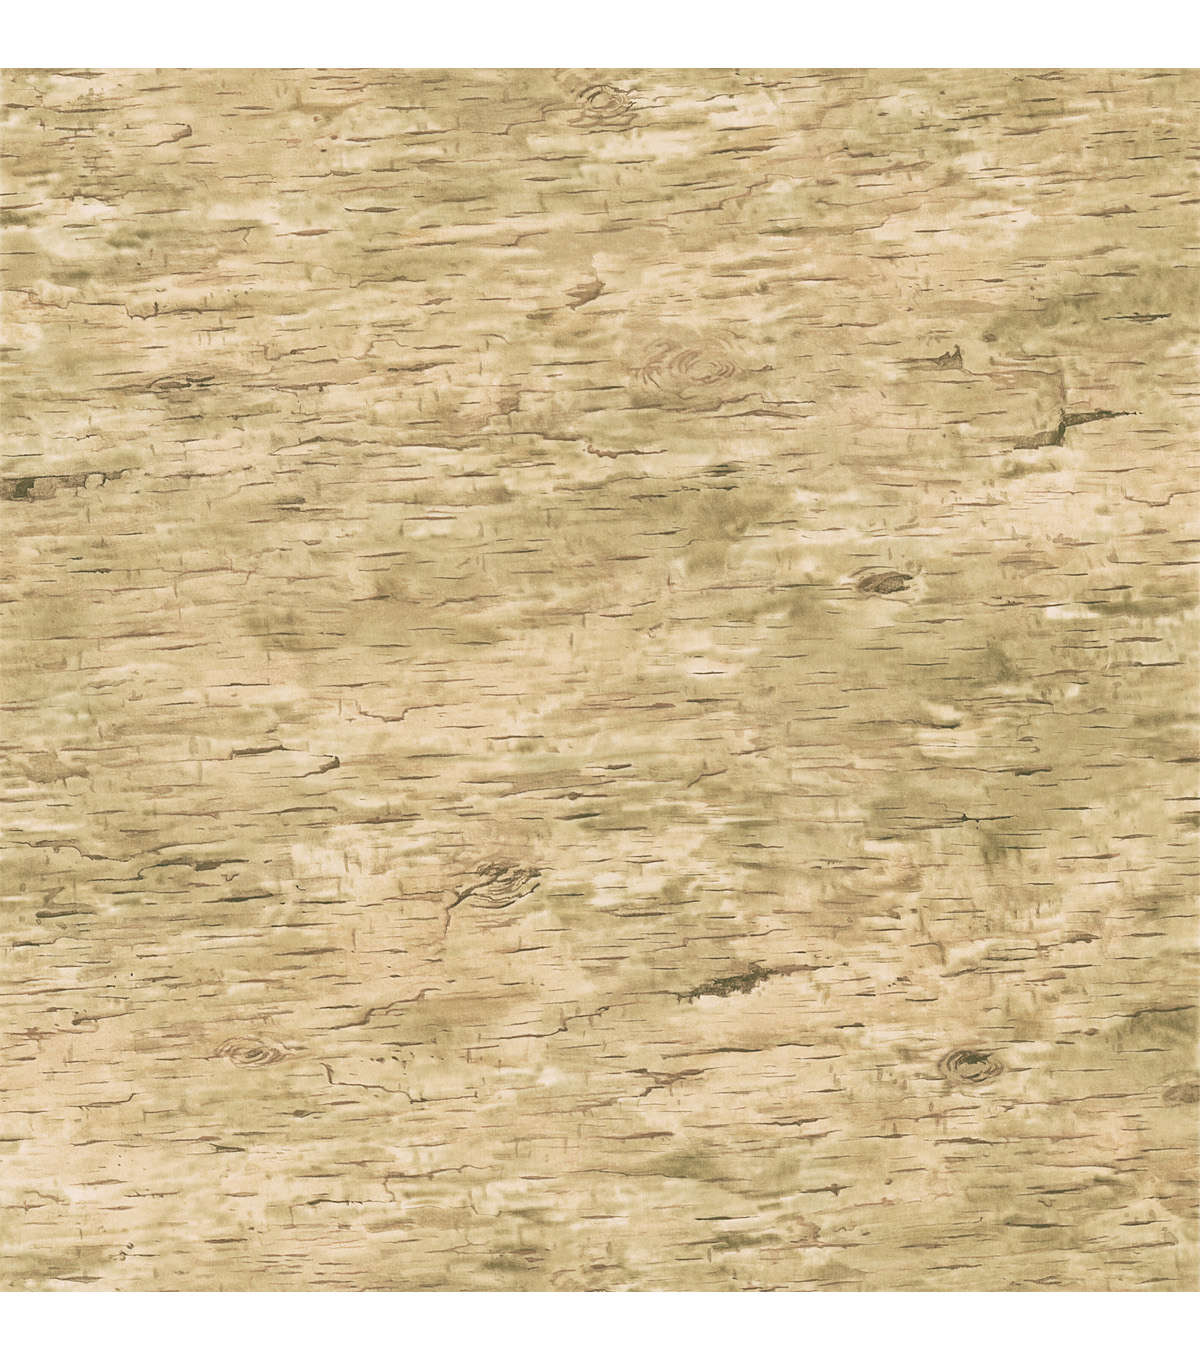 Birch Light Brown Bark Texture Wallpaper